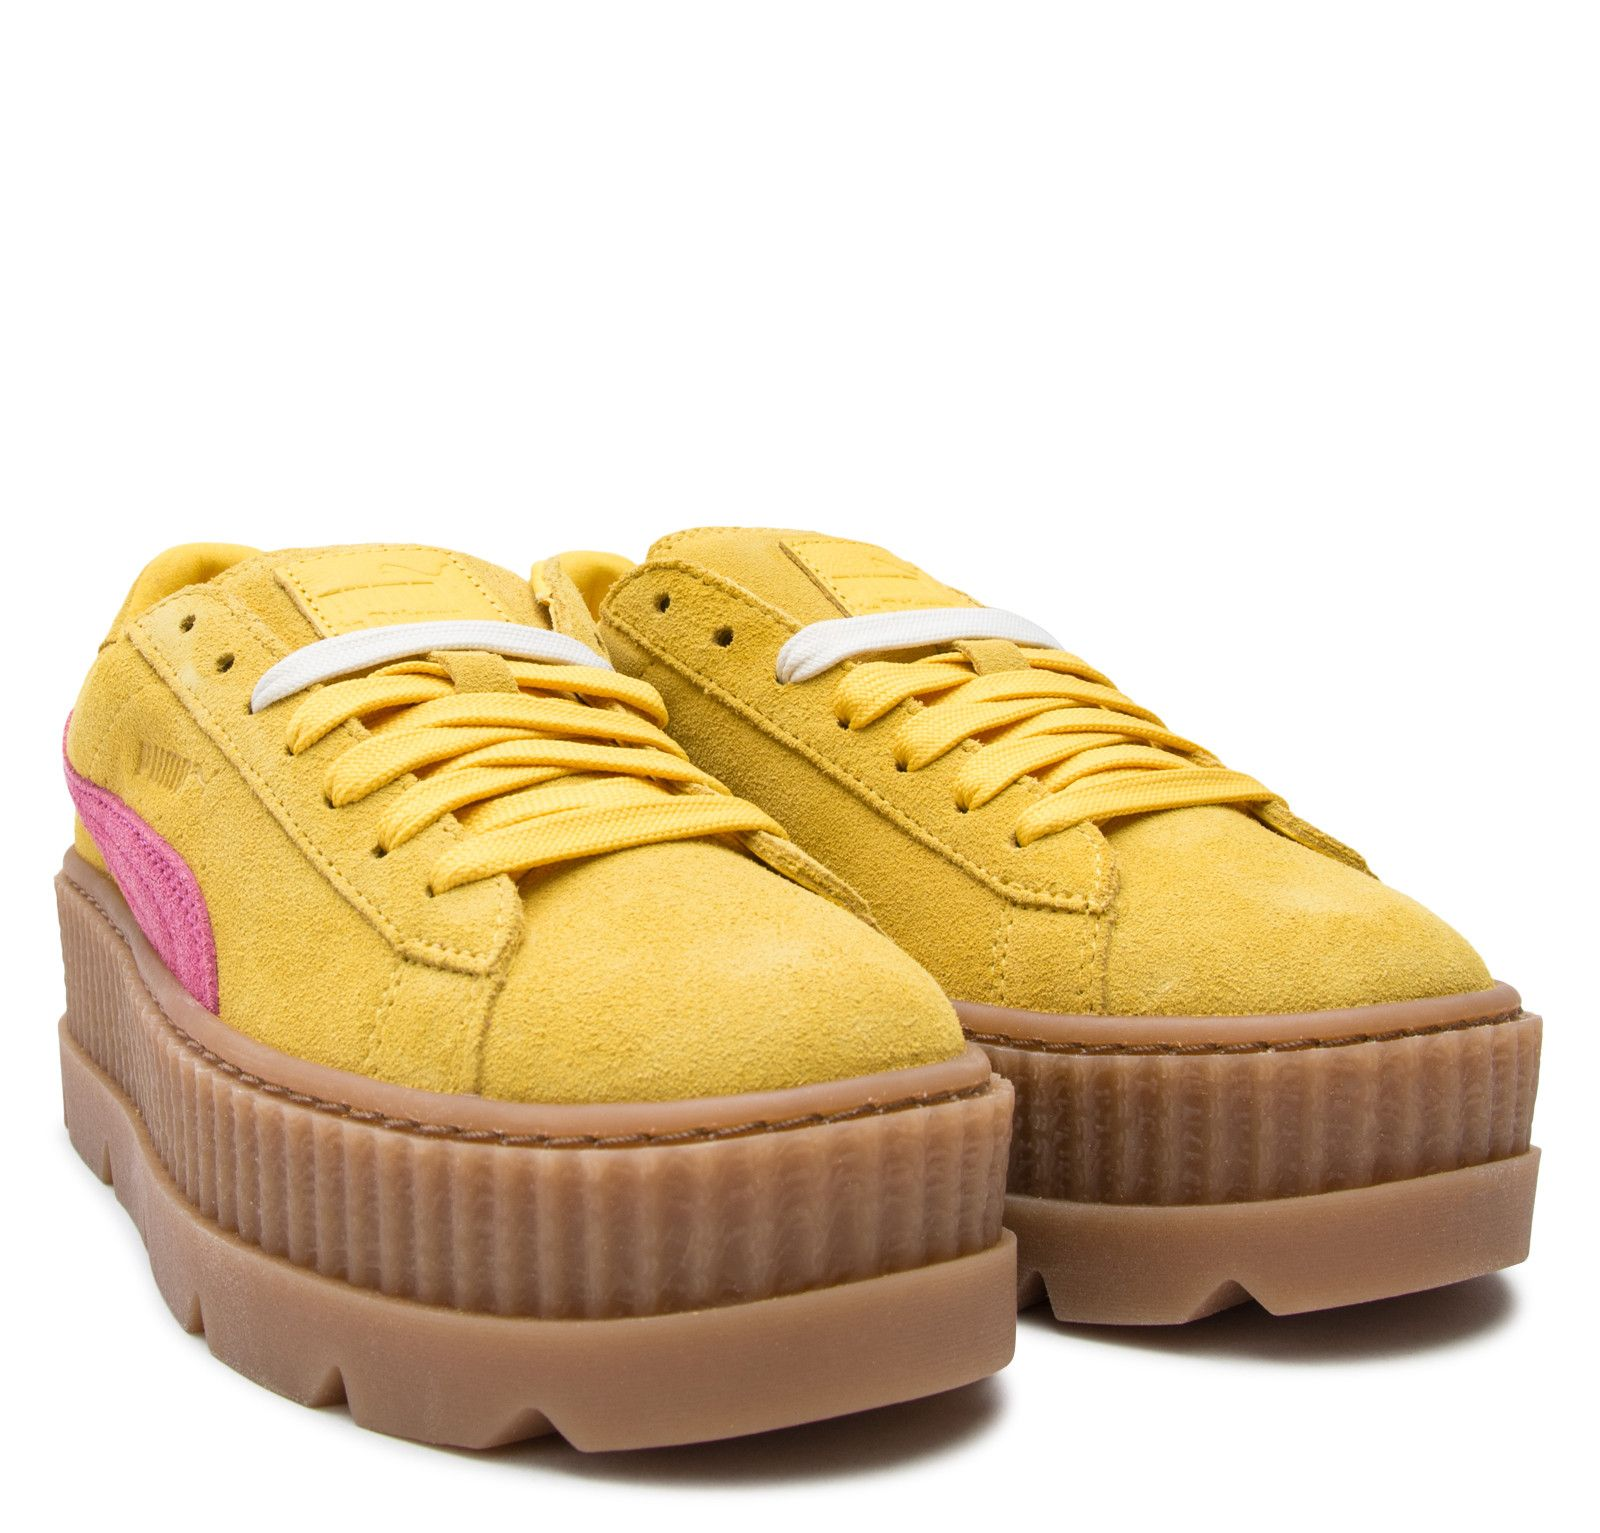 puma creepers dtlr